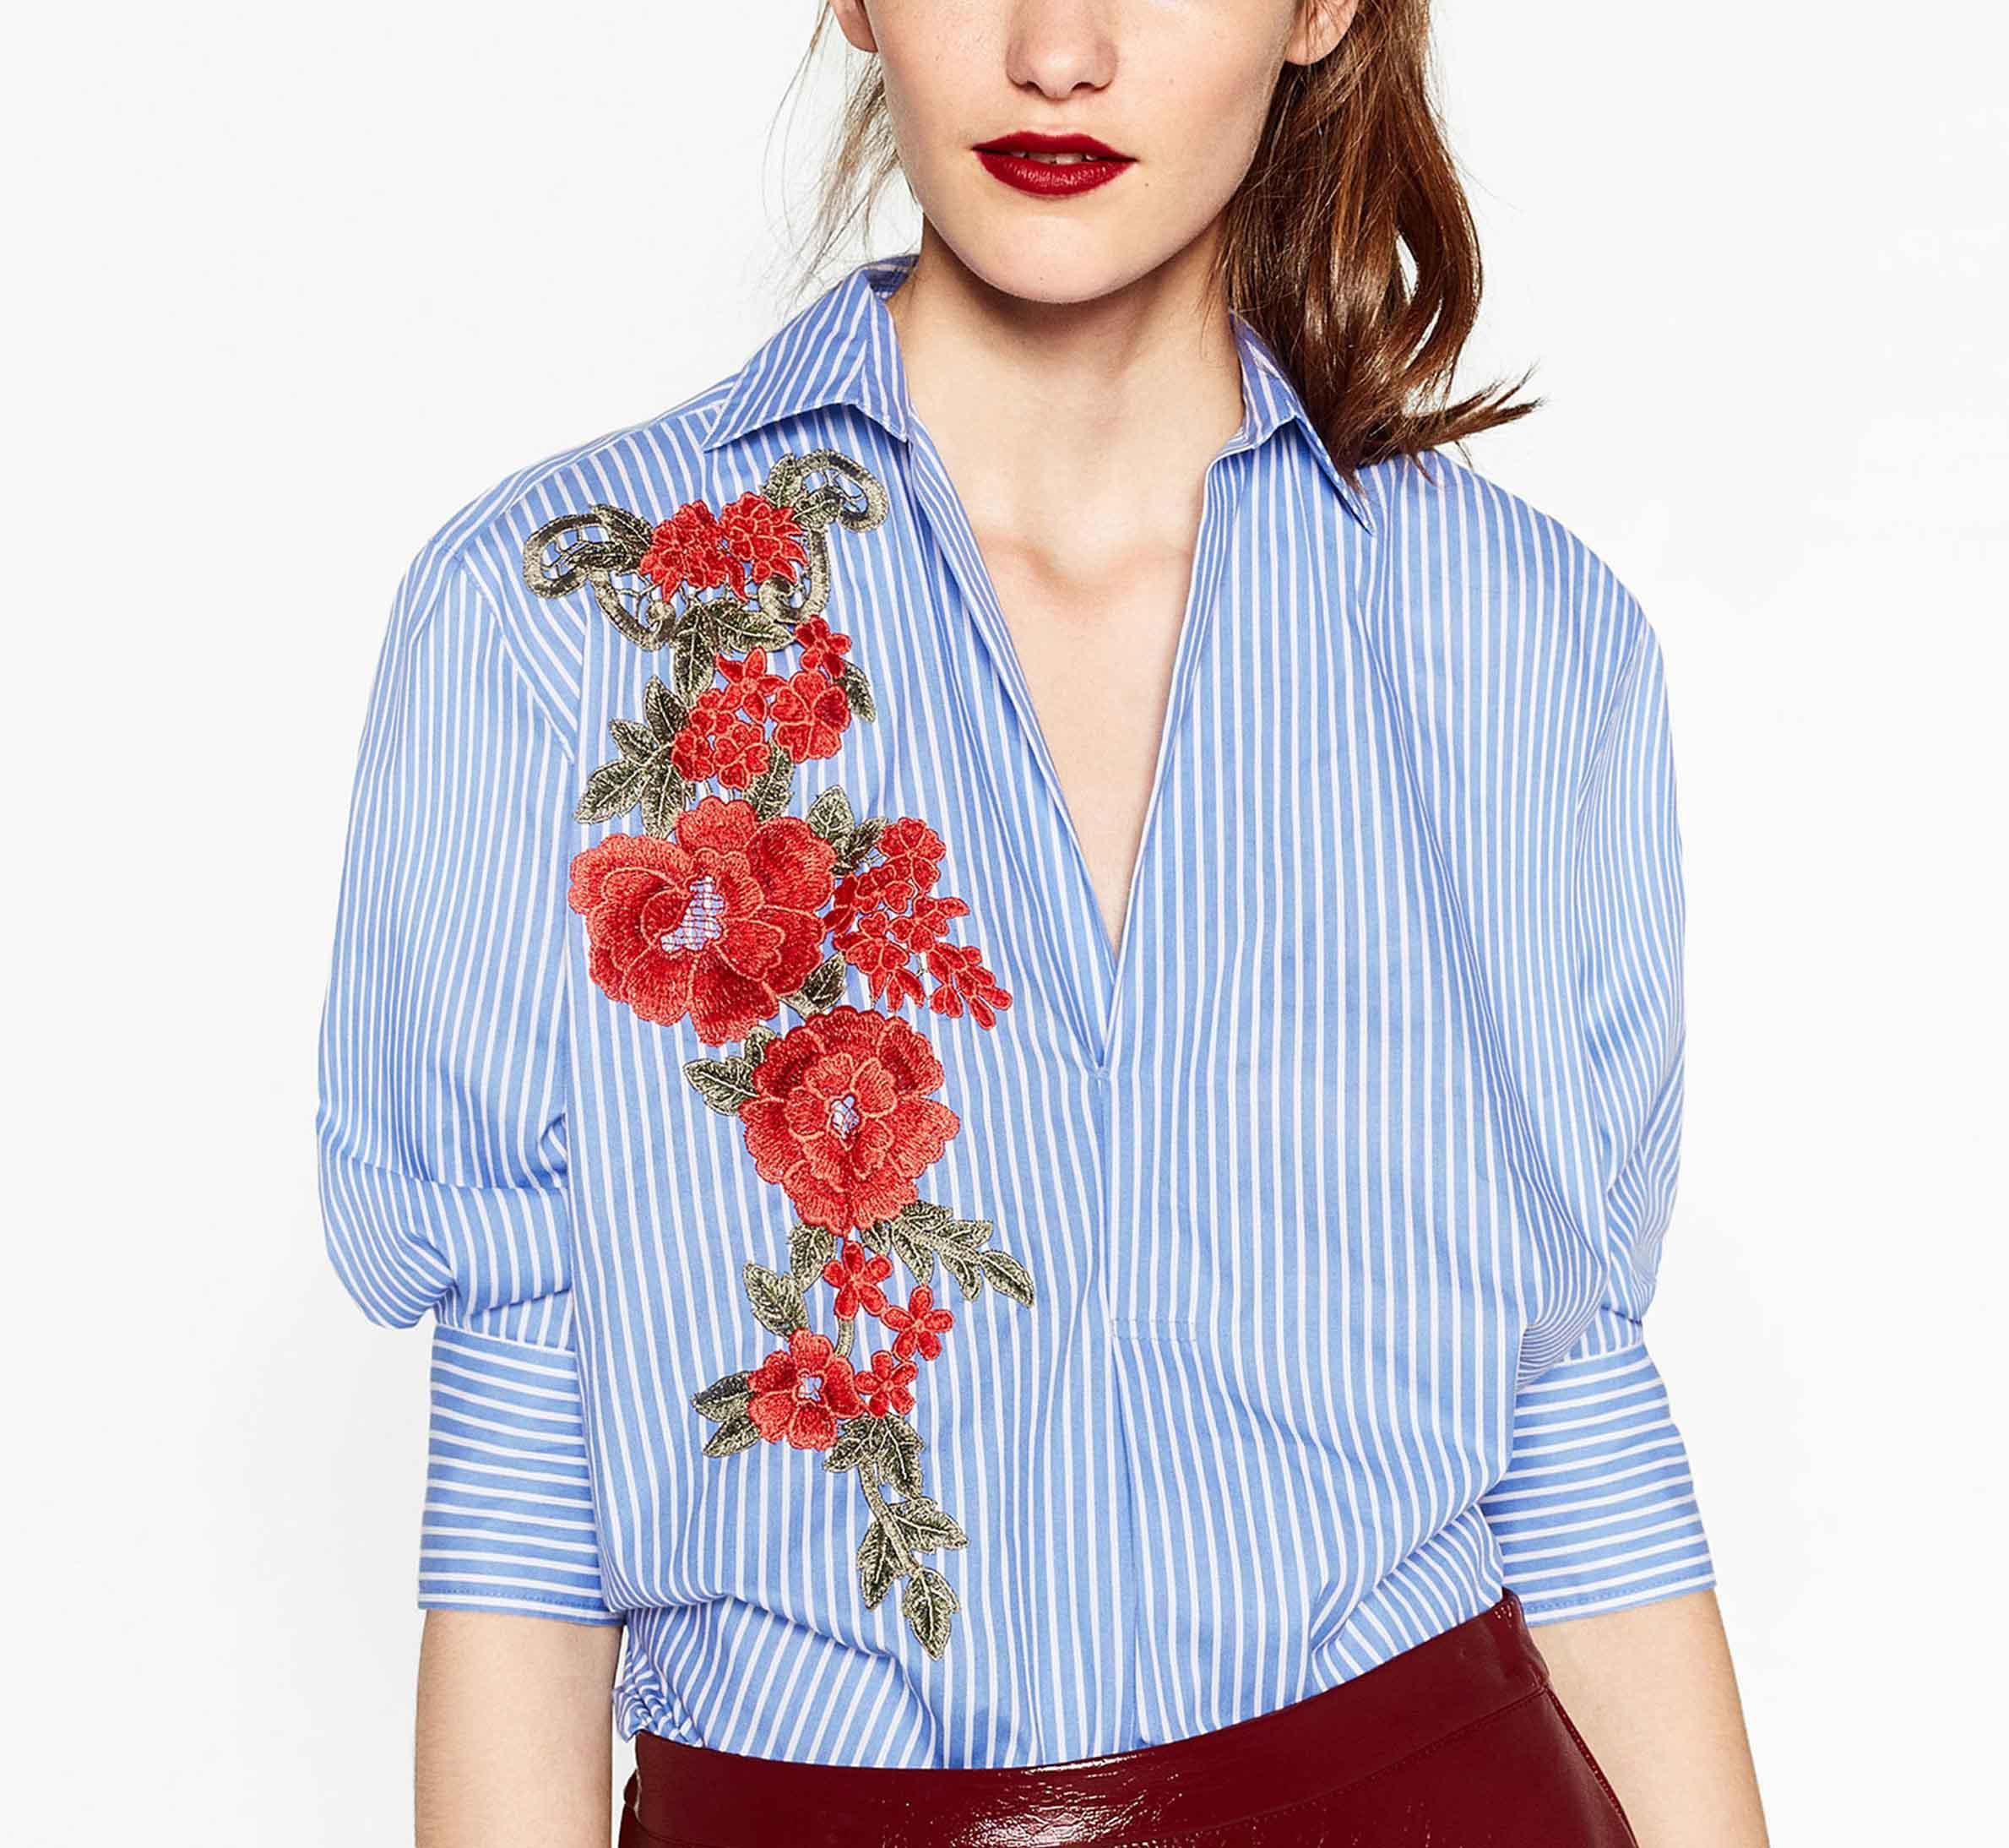 5fe8e062e97 2019 2017 Women Elegant Red Flower Appliques Striped Shirt Embroidered  Blouse Work Wear Office Lady Slim Loose Tops Blusas From Andylife